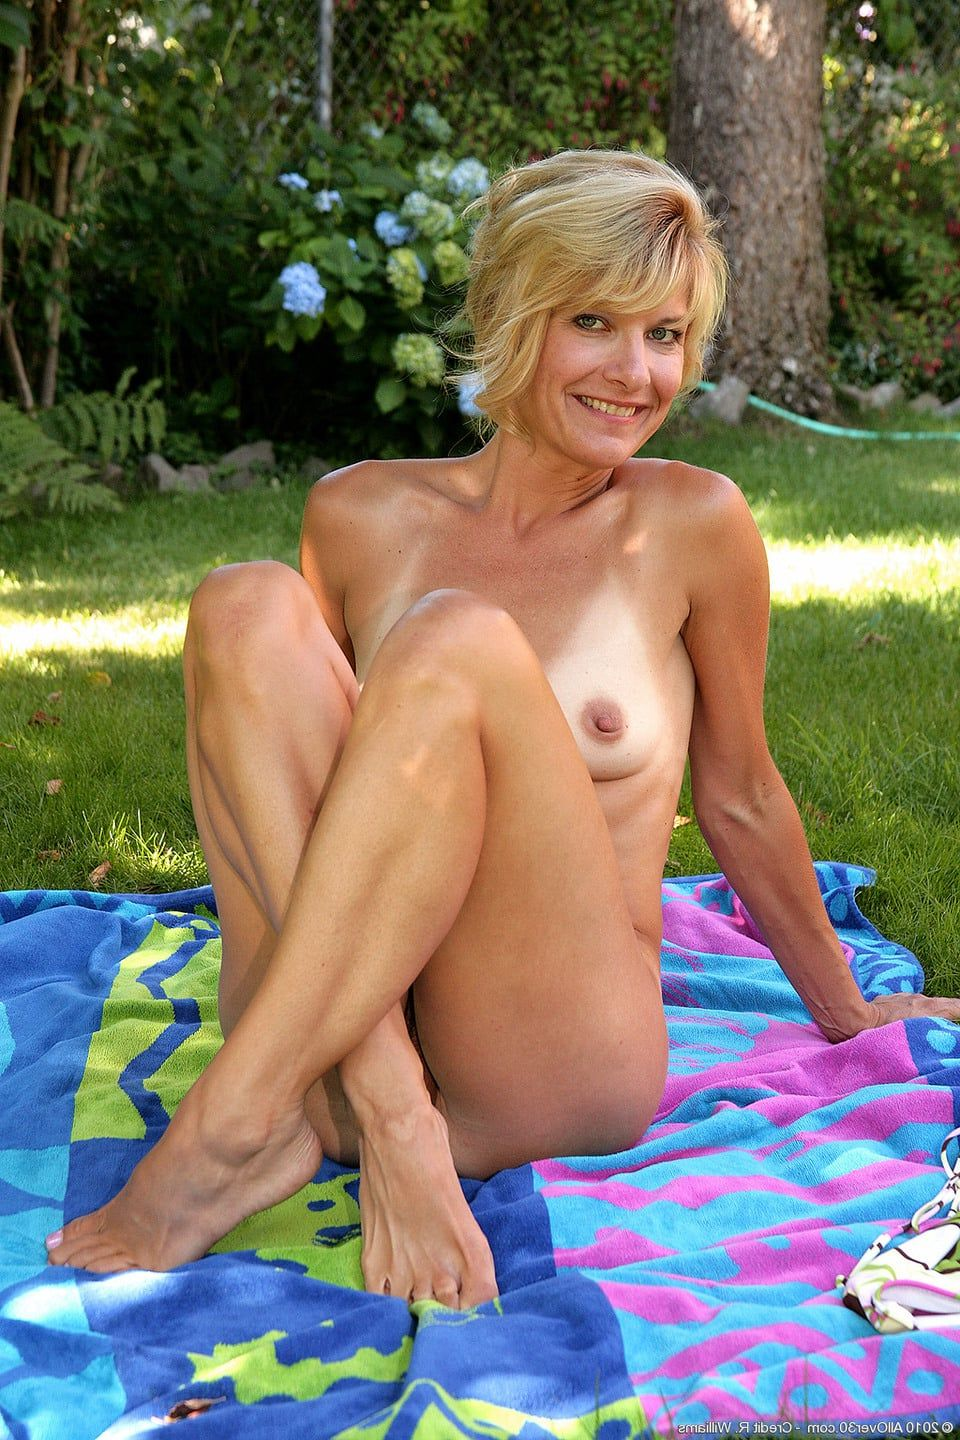 Mature women nude outside